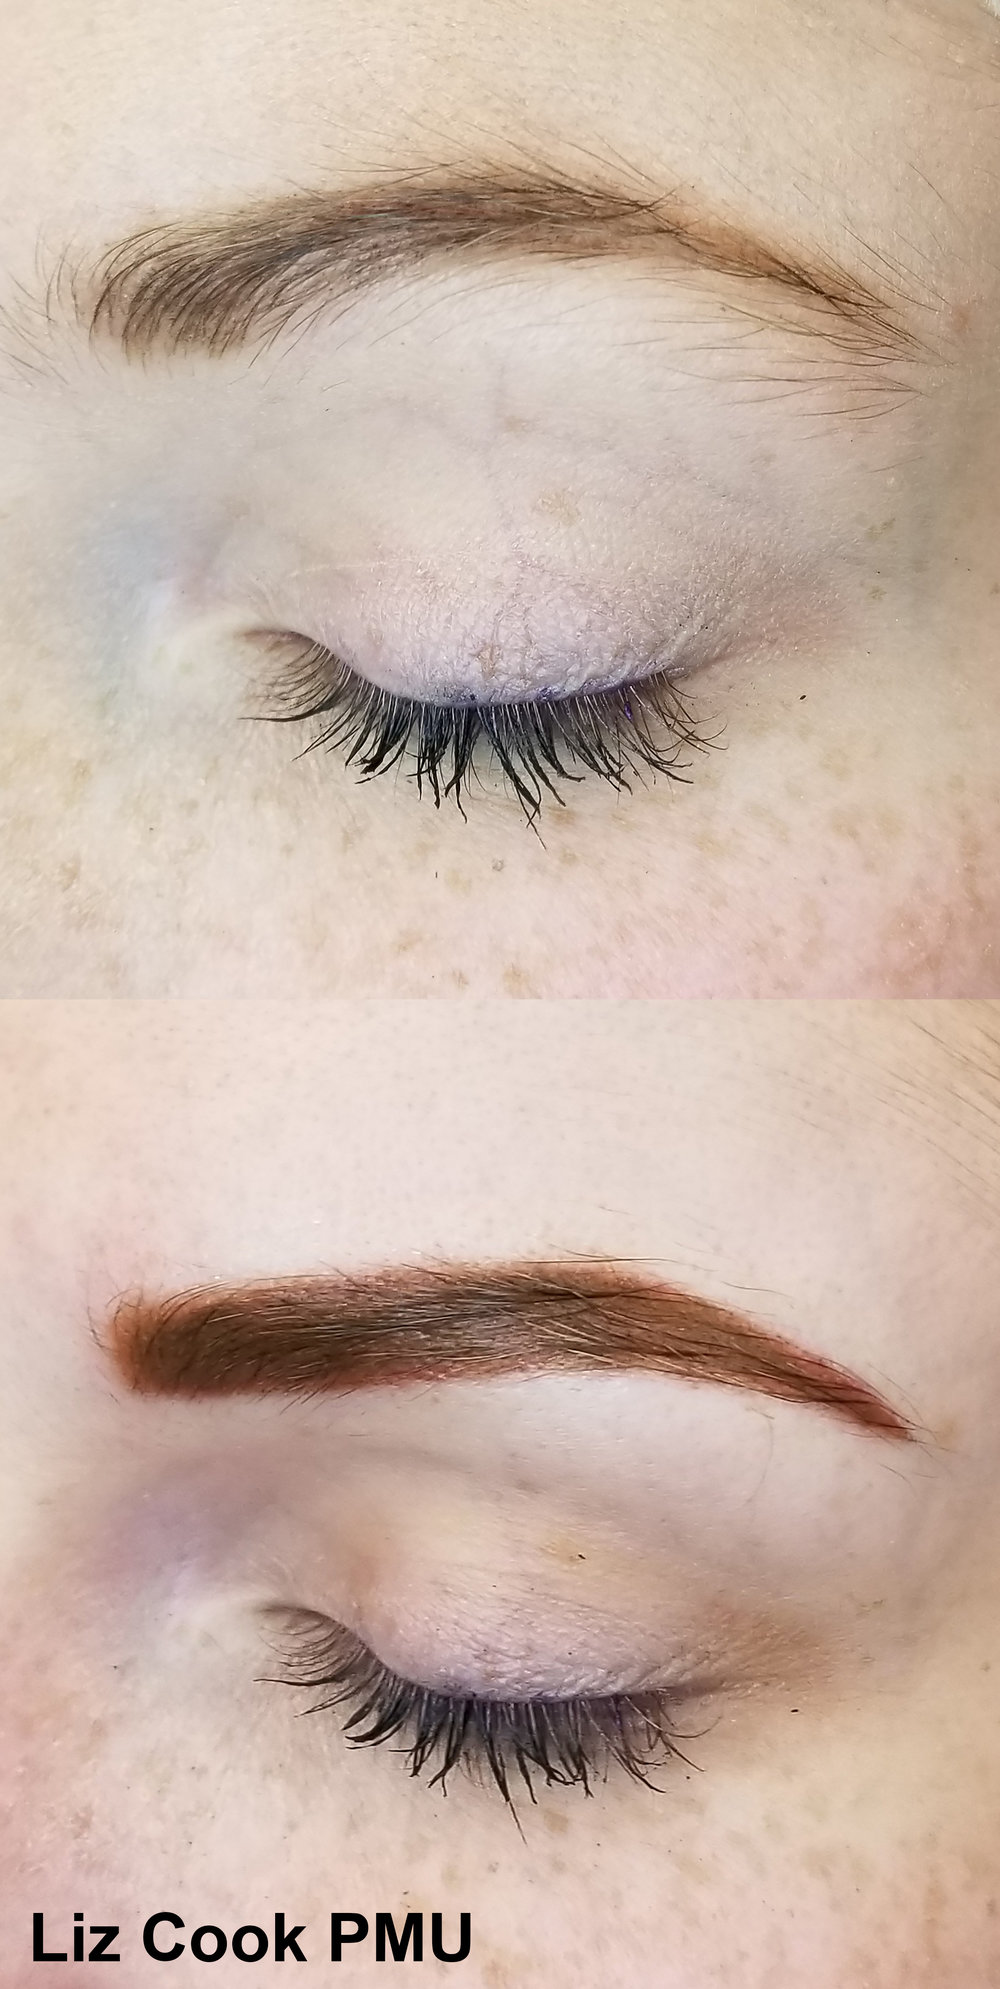 Liz Cook PMU EM Dark Strawberry Blonde Brows Side Dallas TX Permanent Cosmetics.jpg